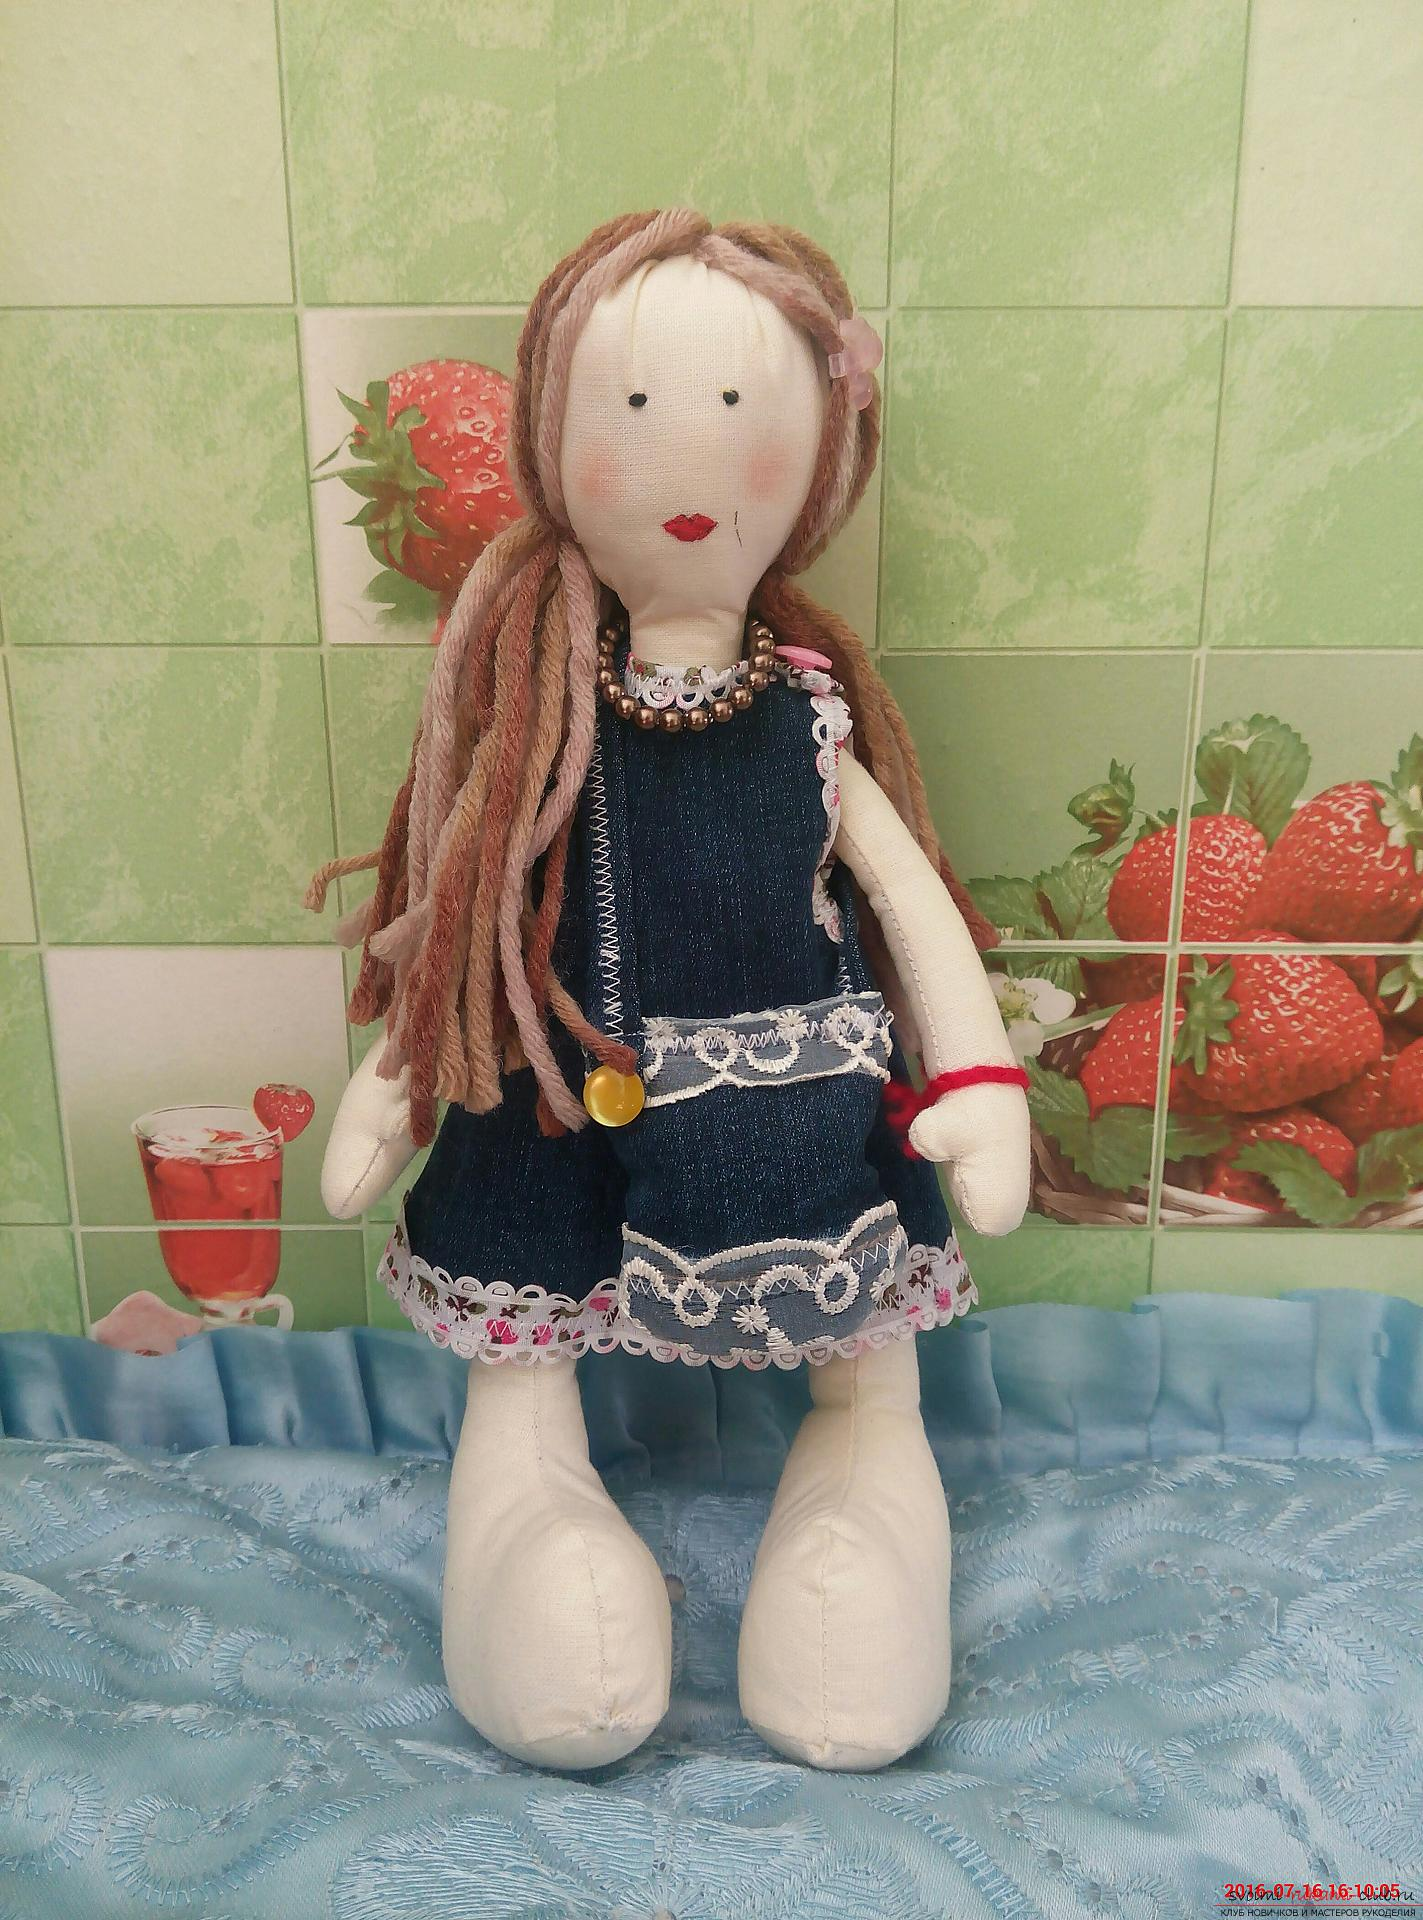 Snowball doll made of cloth. Photo # 2